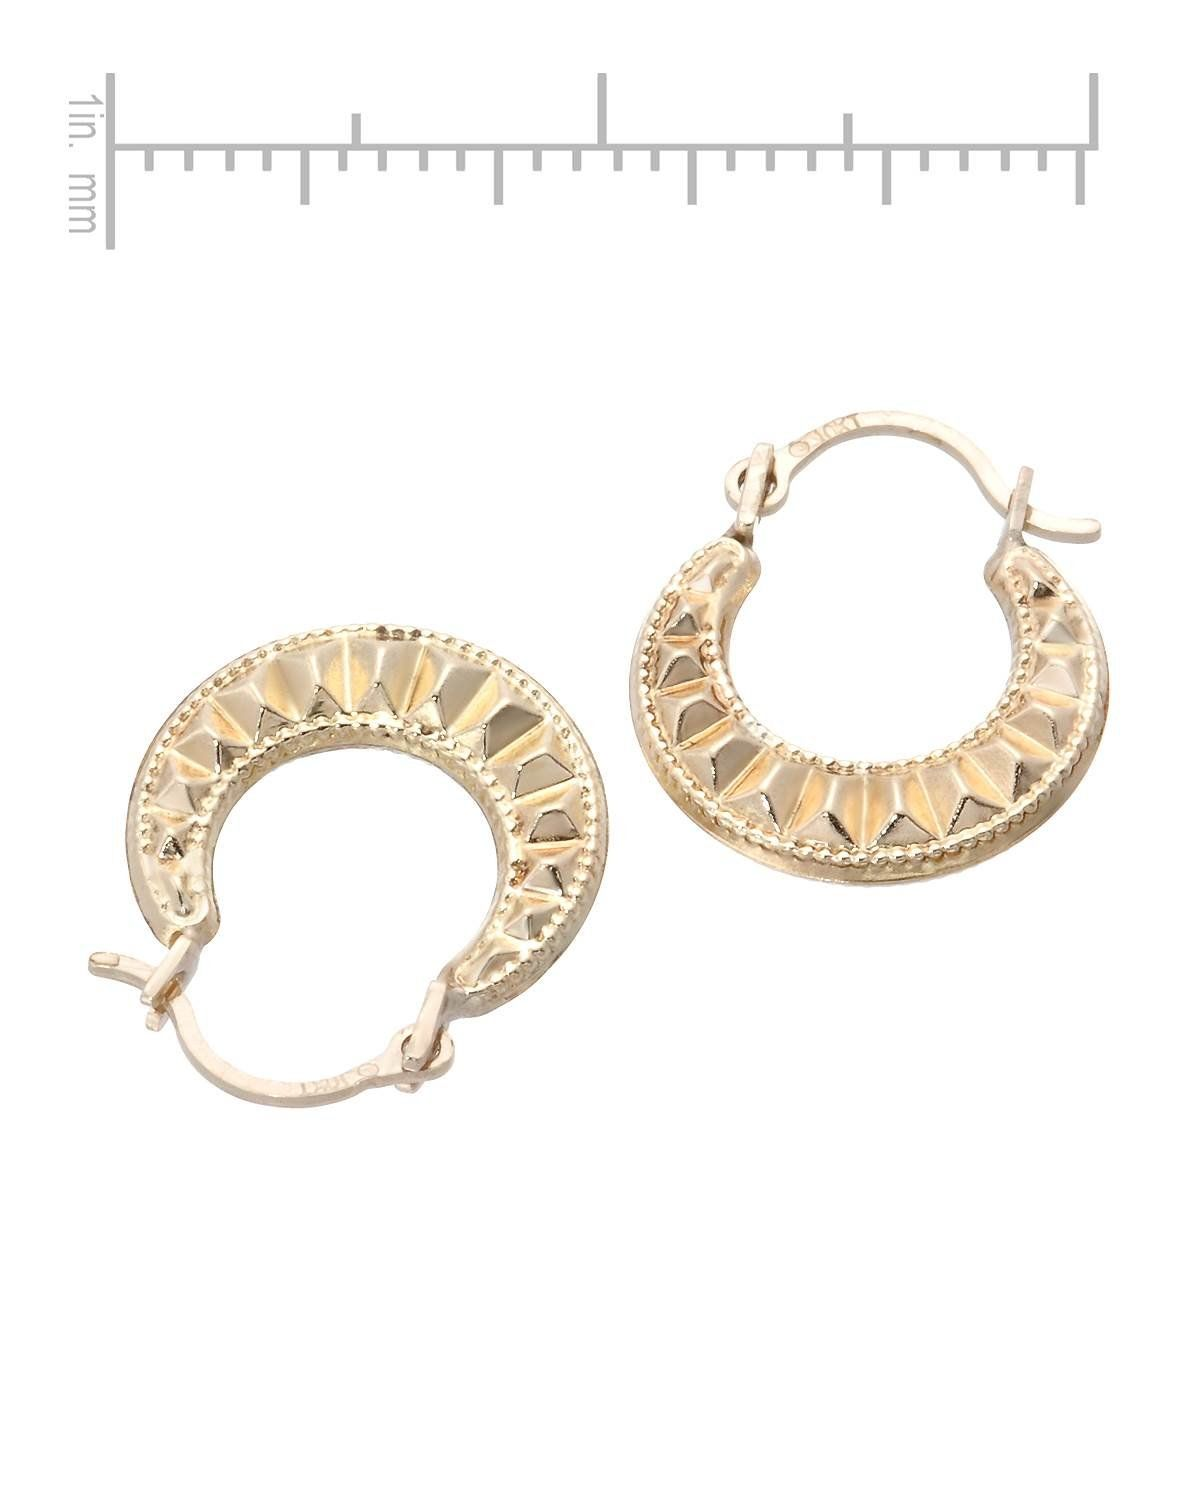 Mcs Jewelry 10 Karat Yellow Gold Small Classic Hoop Earrings With Design Diameter 16 Mm Affiliate Mcs Classic Earrings Hoop Earrings Earrings